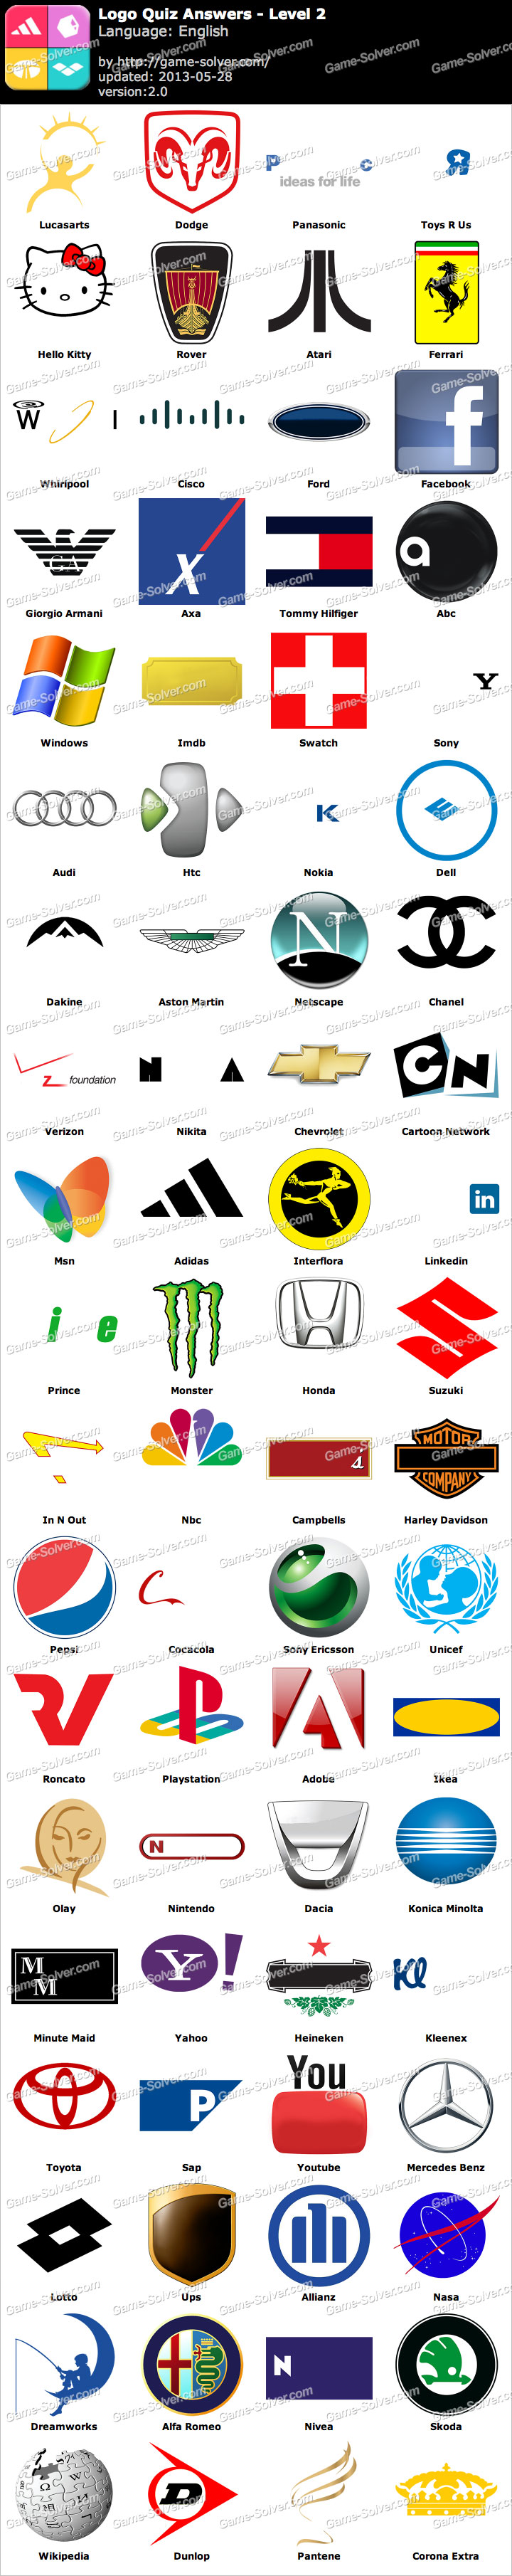 Web And Tech Logos Quiz Answers | www.pixshark.com ...